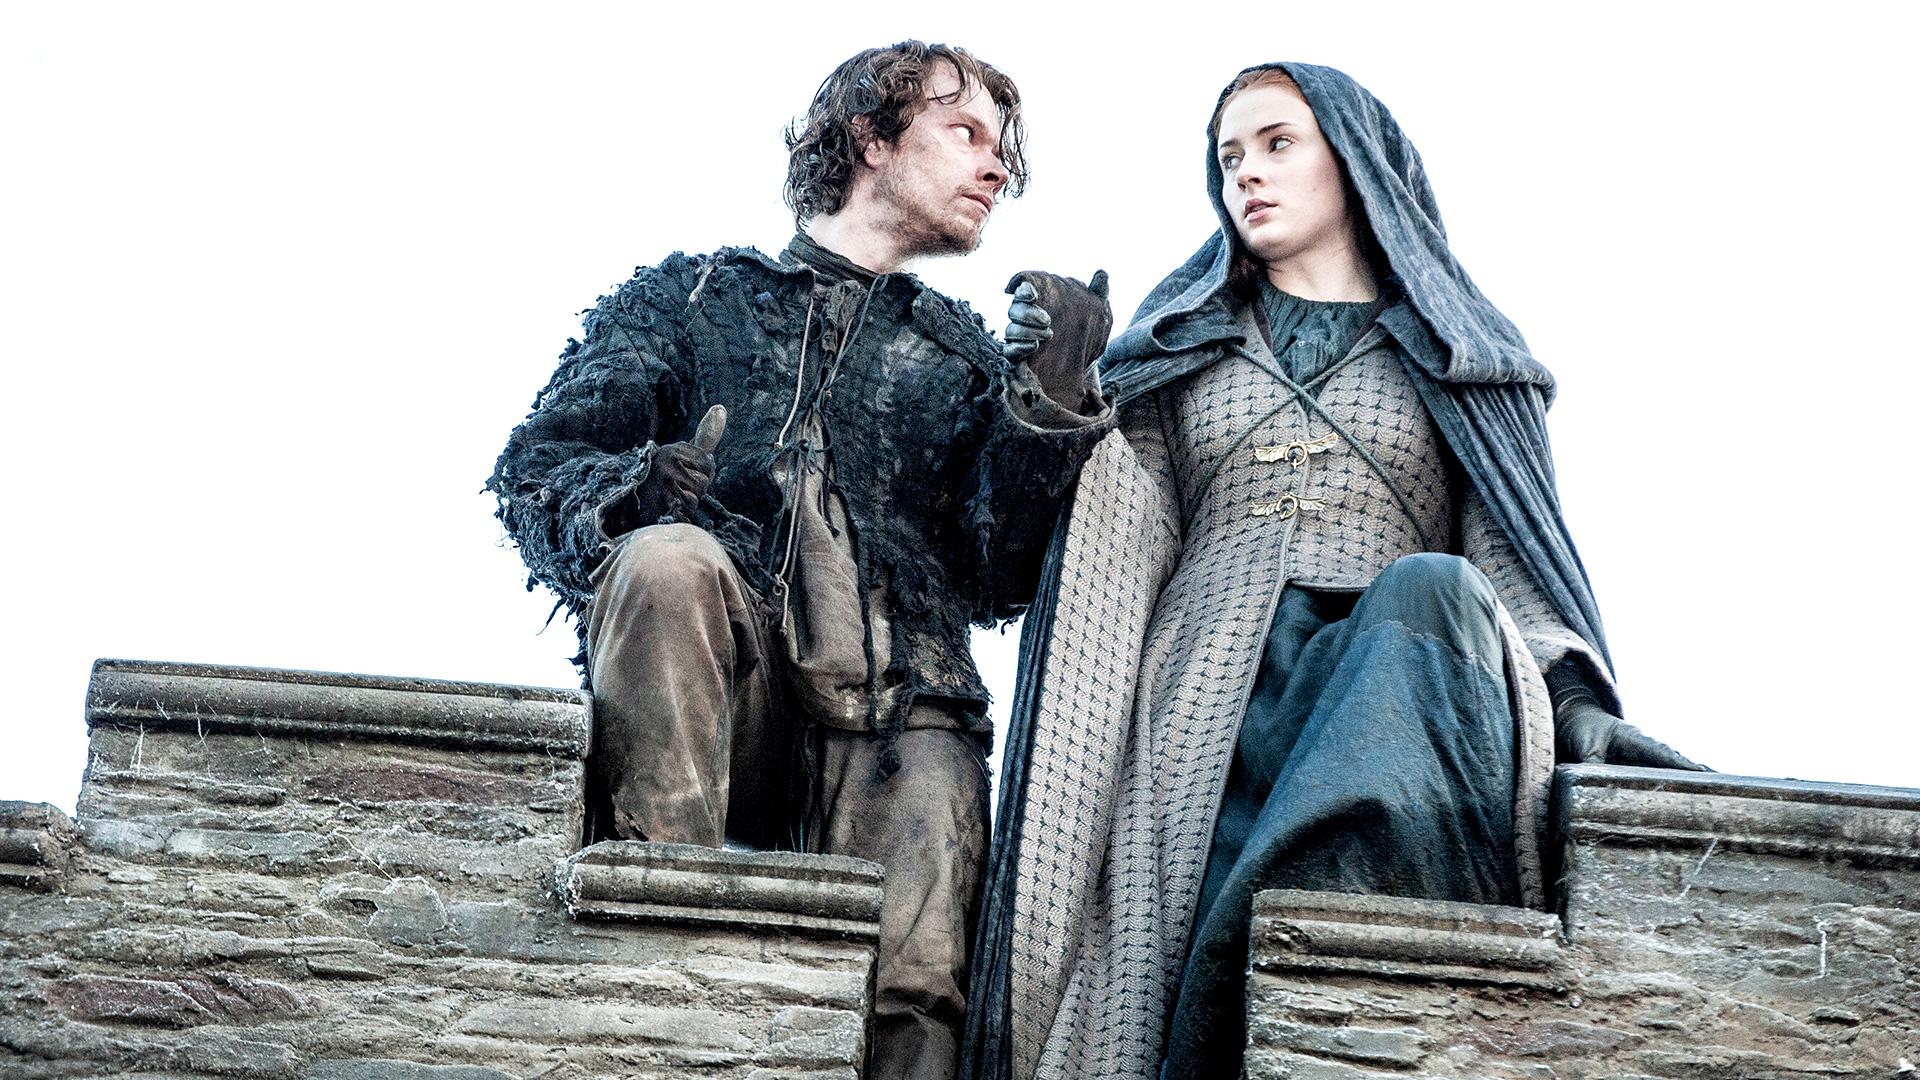 NEGATIV_GAME OF THRONES_MOTHER'S MERCY_Theon Greyjoy, Sansa Stark